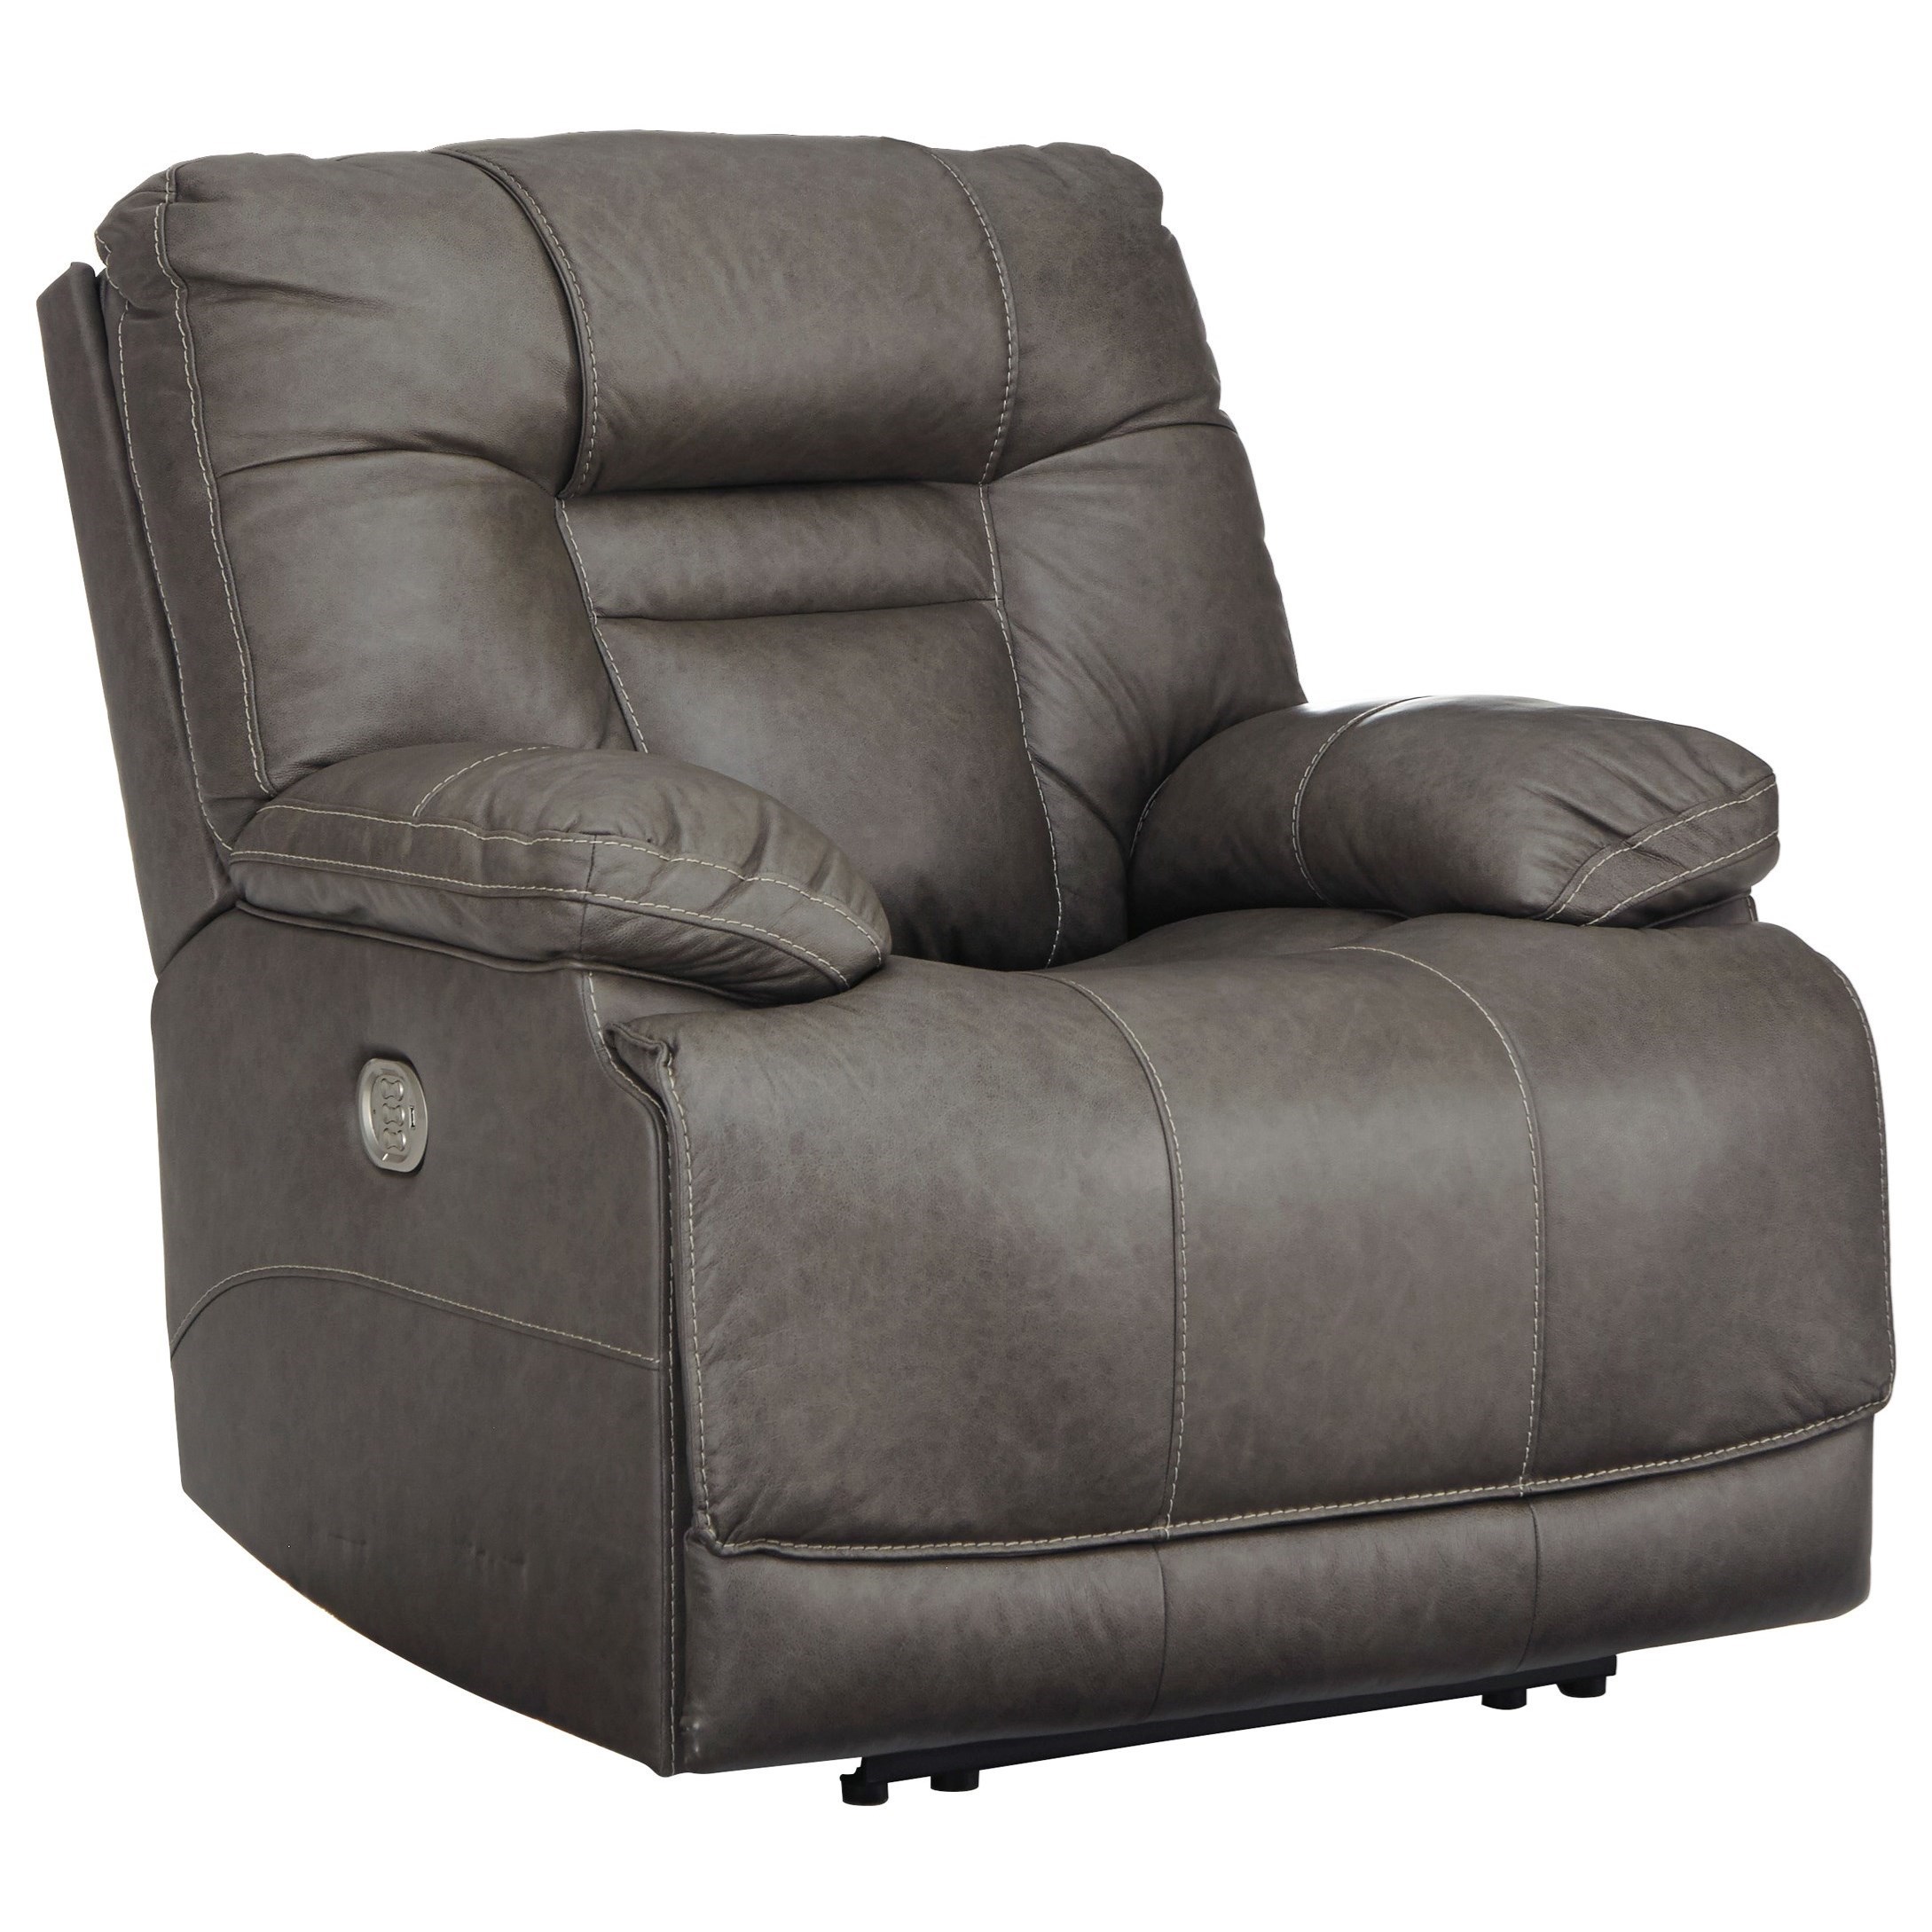 Watson TRIPLE Power Leather Recliner by Signature at Walker's Furniture